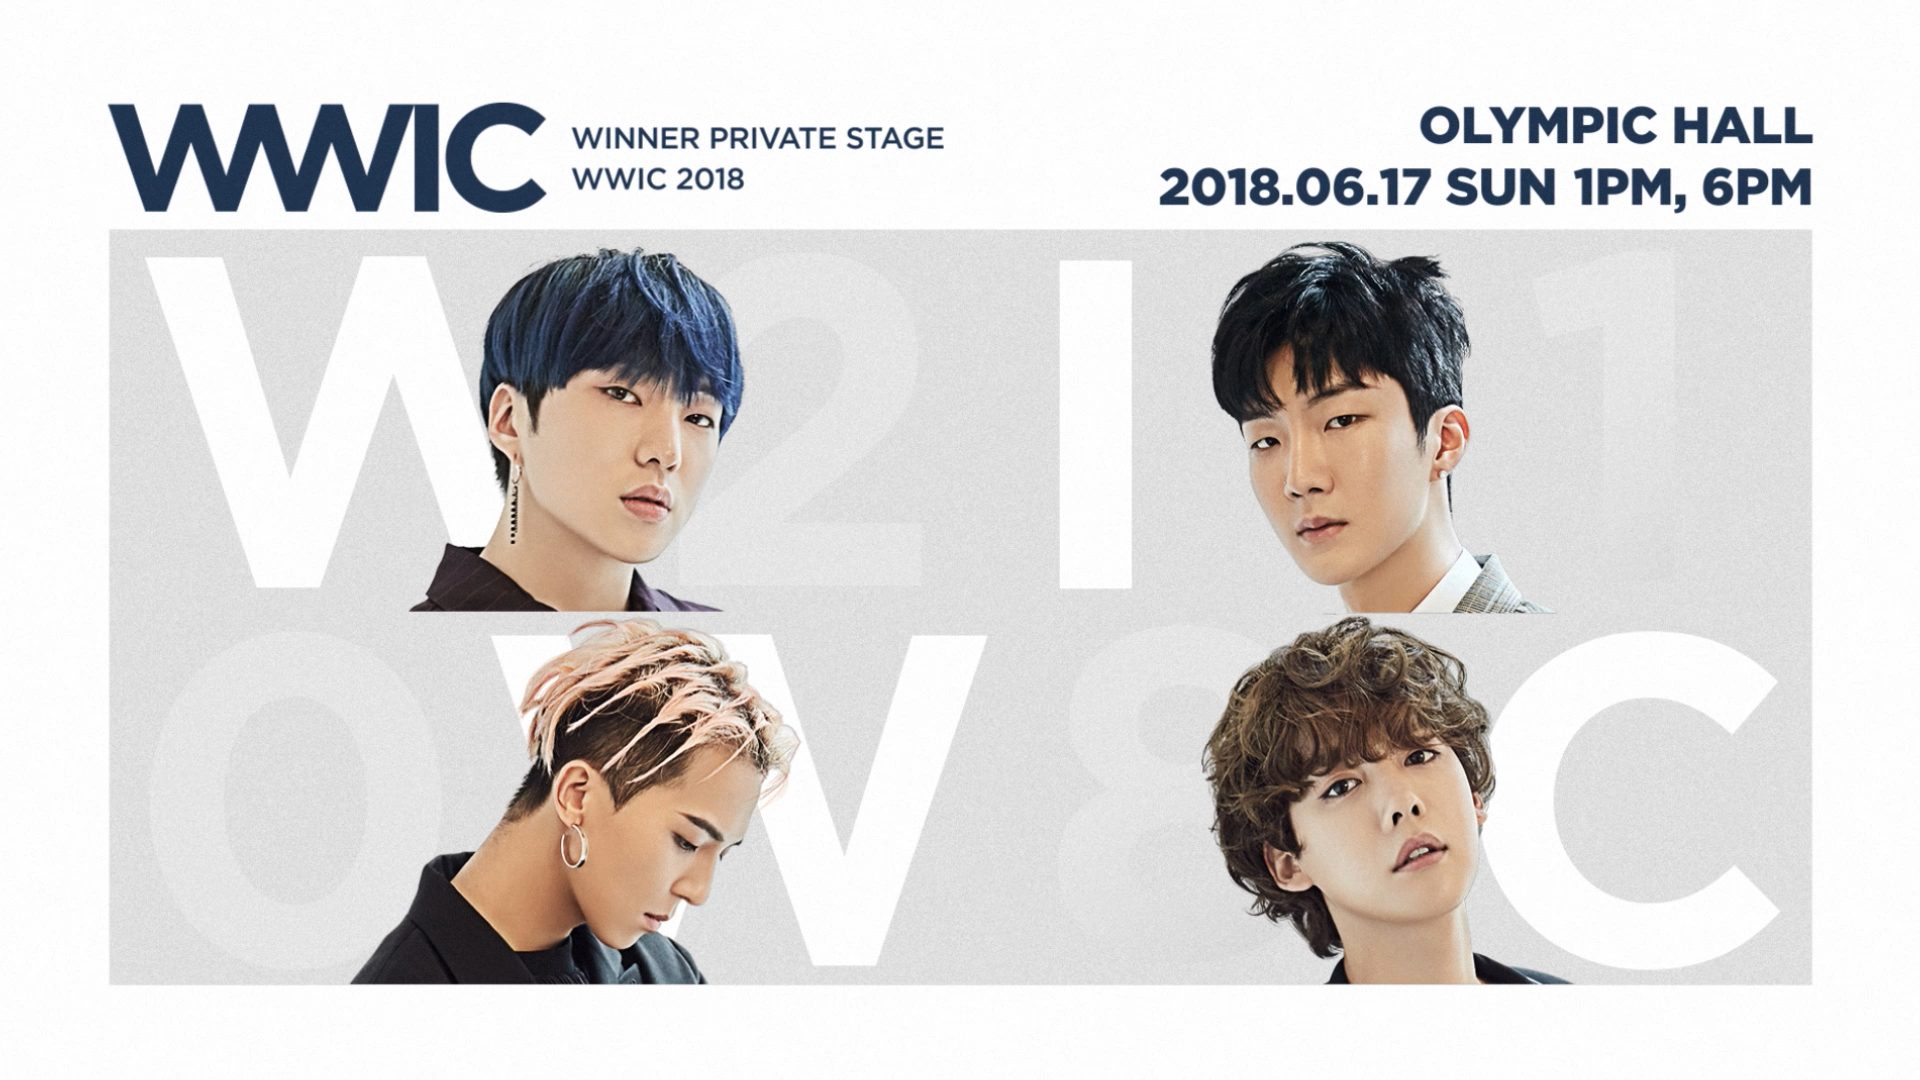 WINNER - PRIVATE STAGE [WWIC 2018] SPOT #1